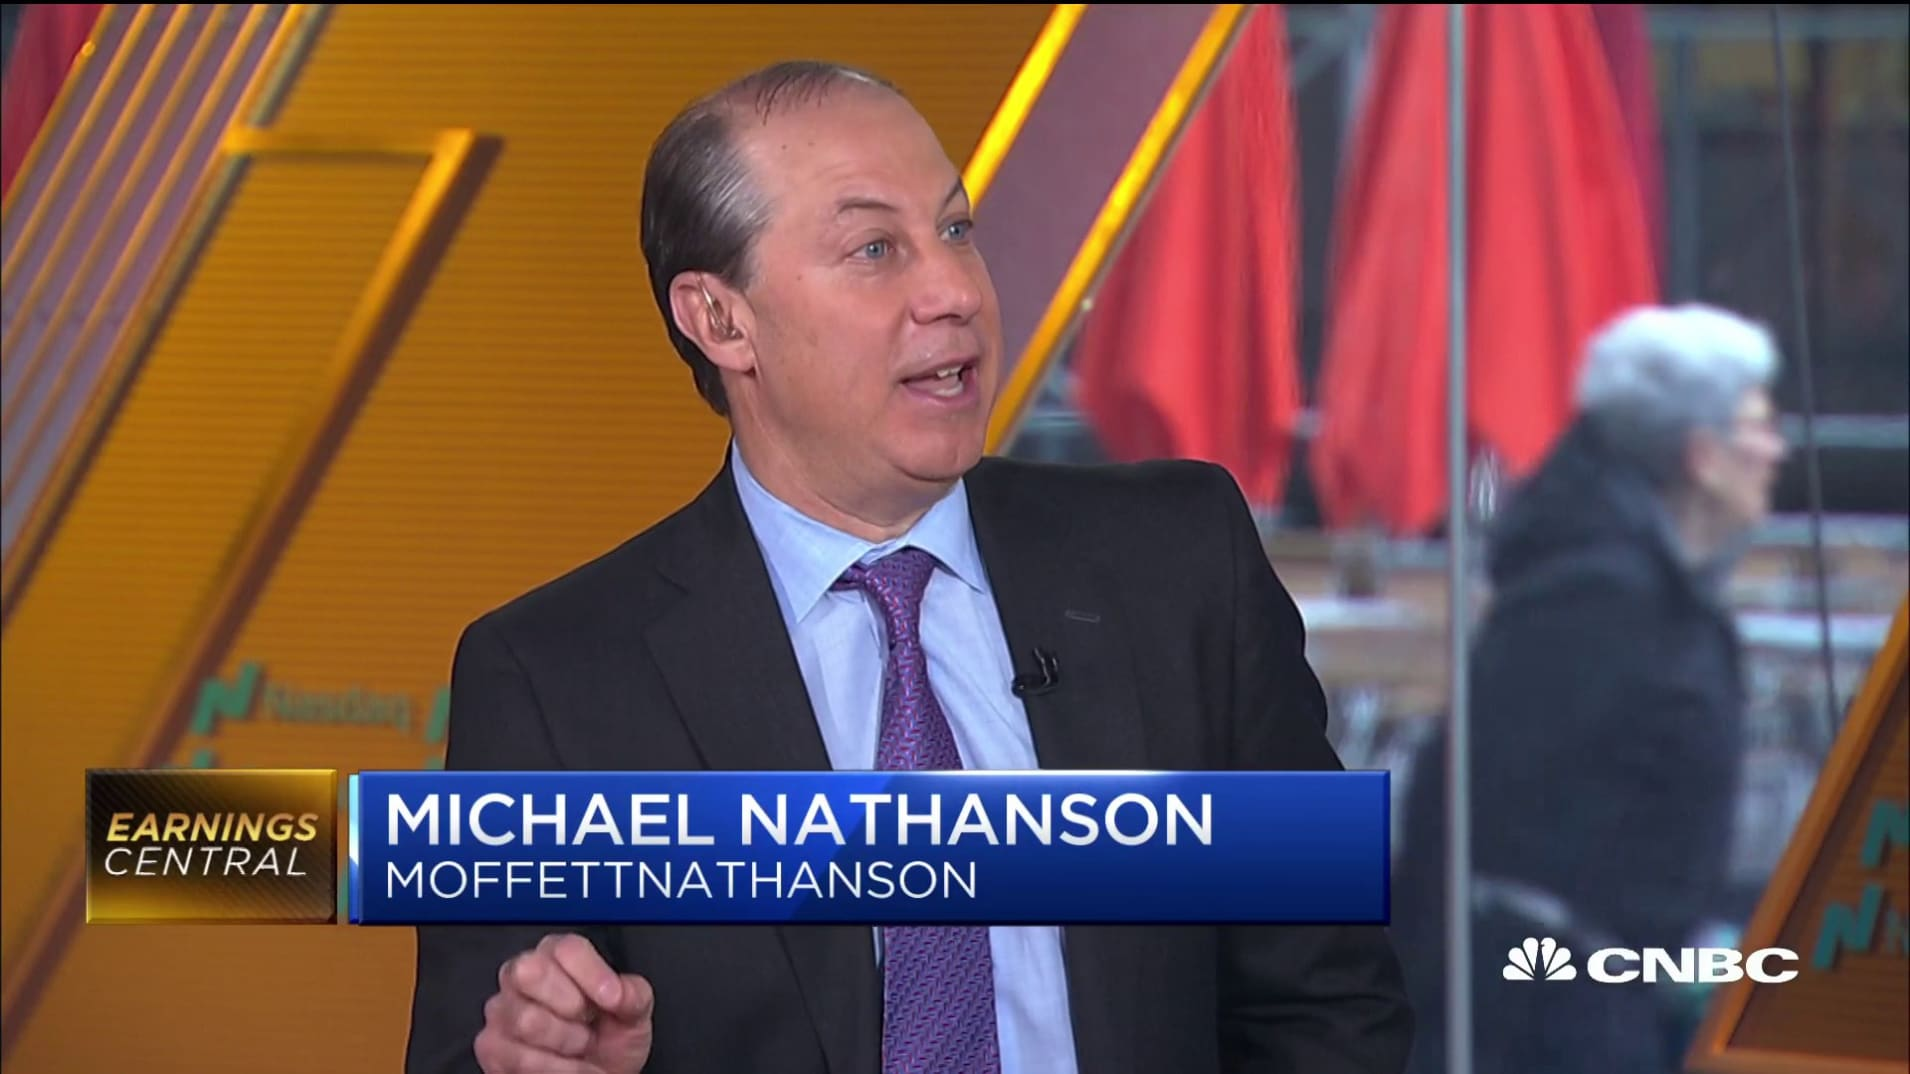 Netflix's long-term play would be to get Comcast out of this relationship: Senior analyst